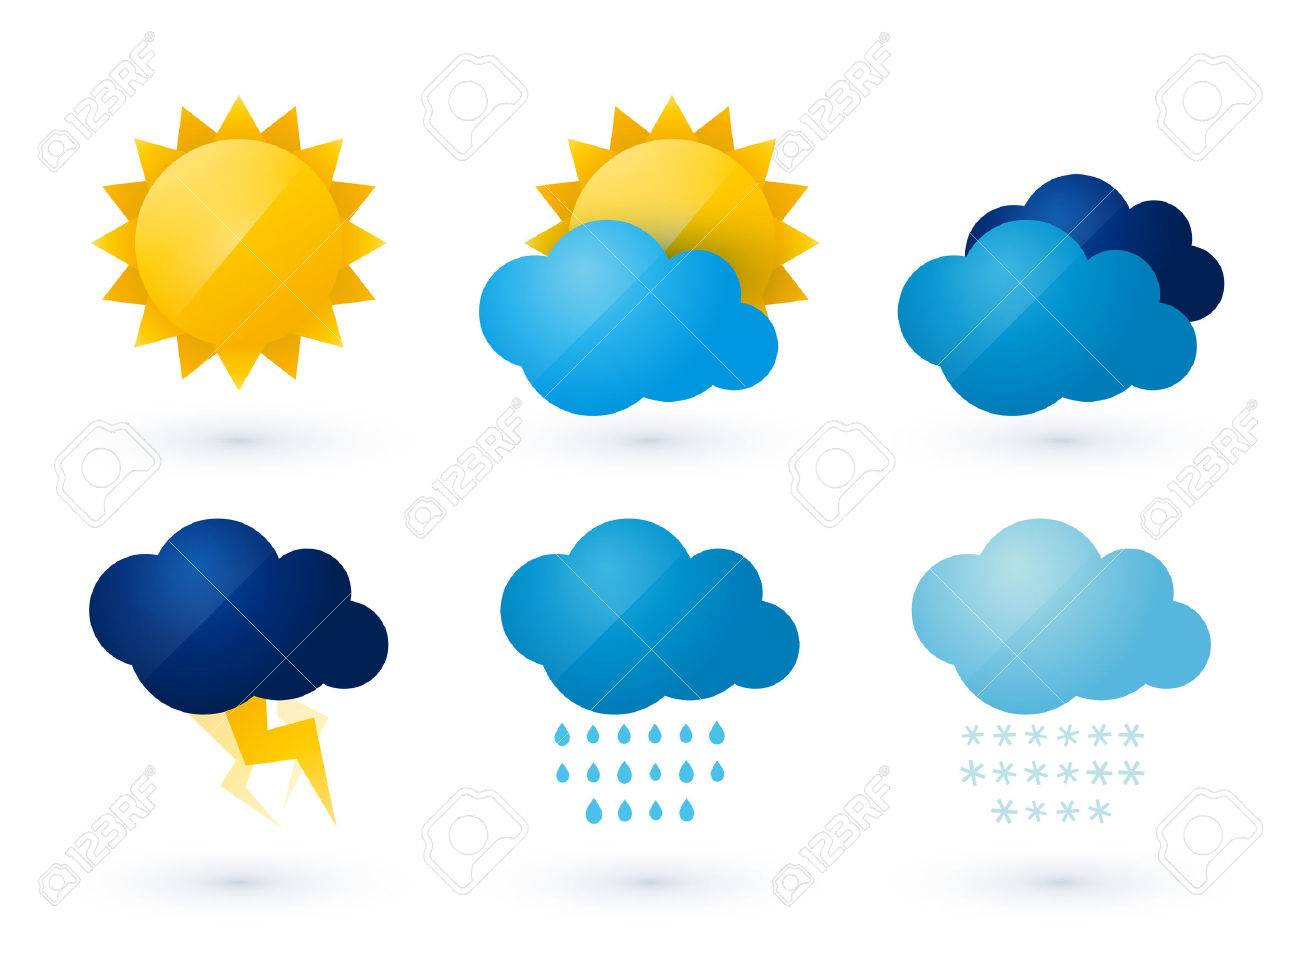 Set Of Weather Vector Icons Royalty Free Cliparts Vectors And Stock Illustration Image 50426740